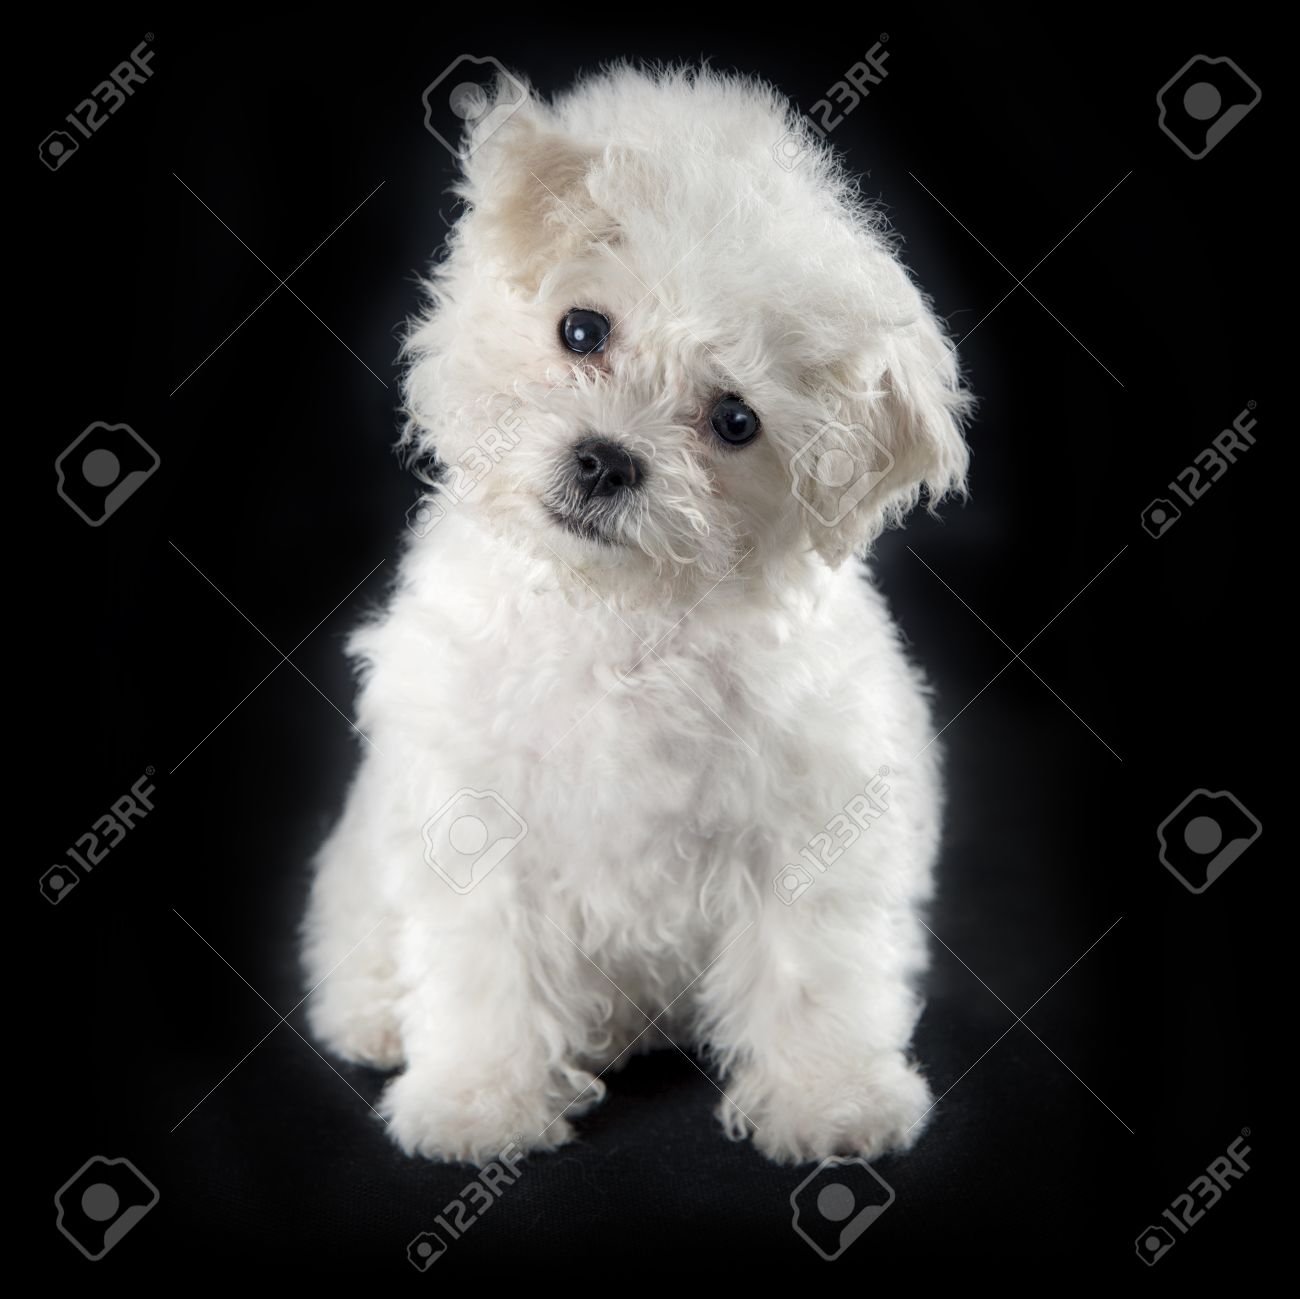 cute small bichon frise puppy at 9 weeks old sitting on black